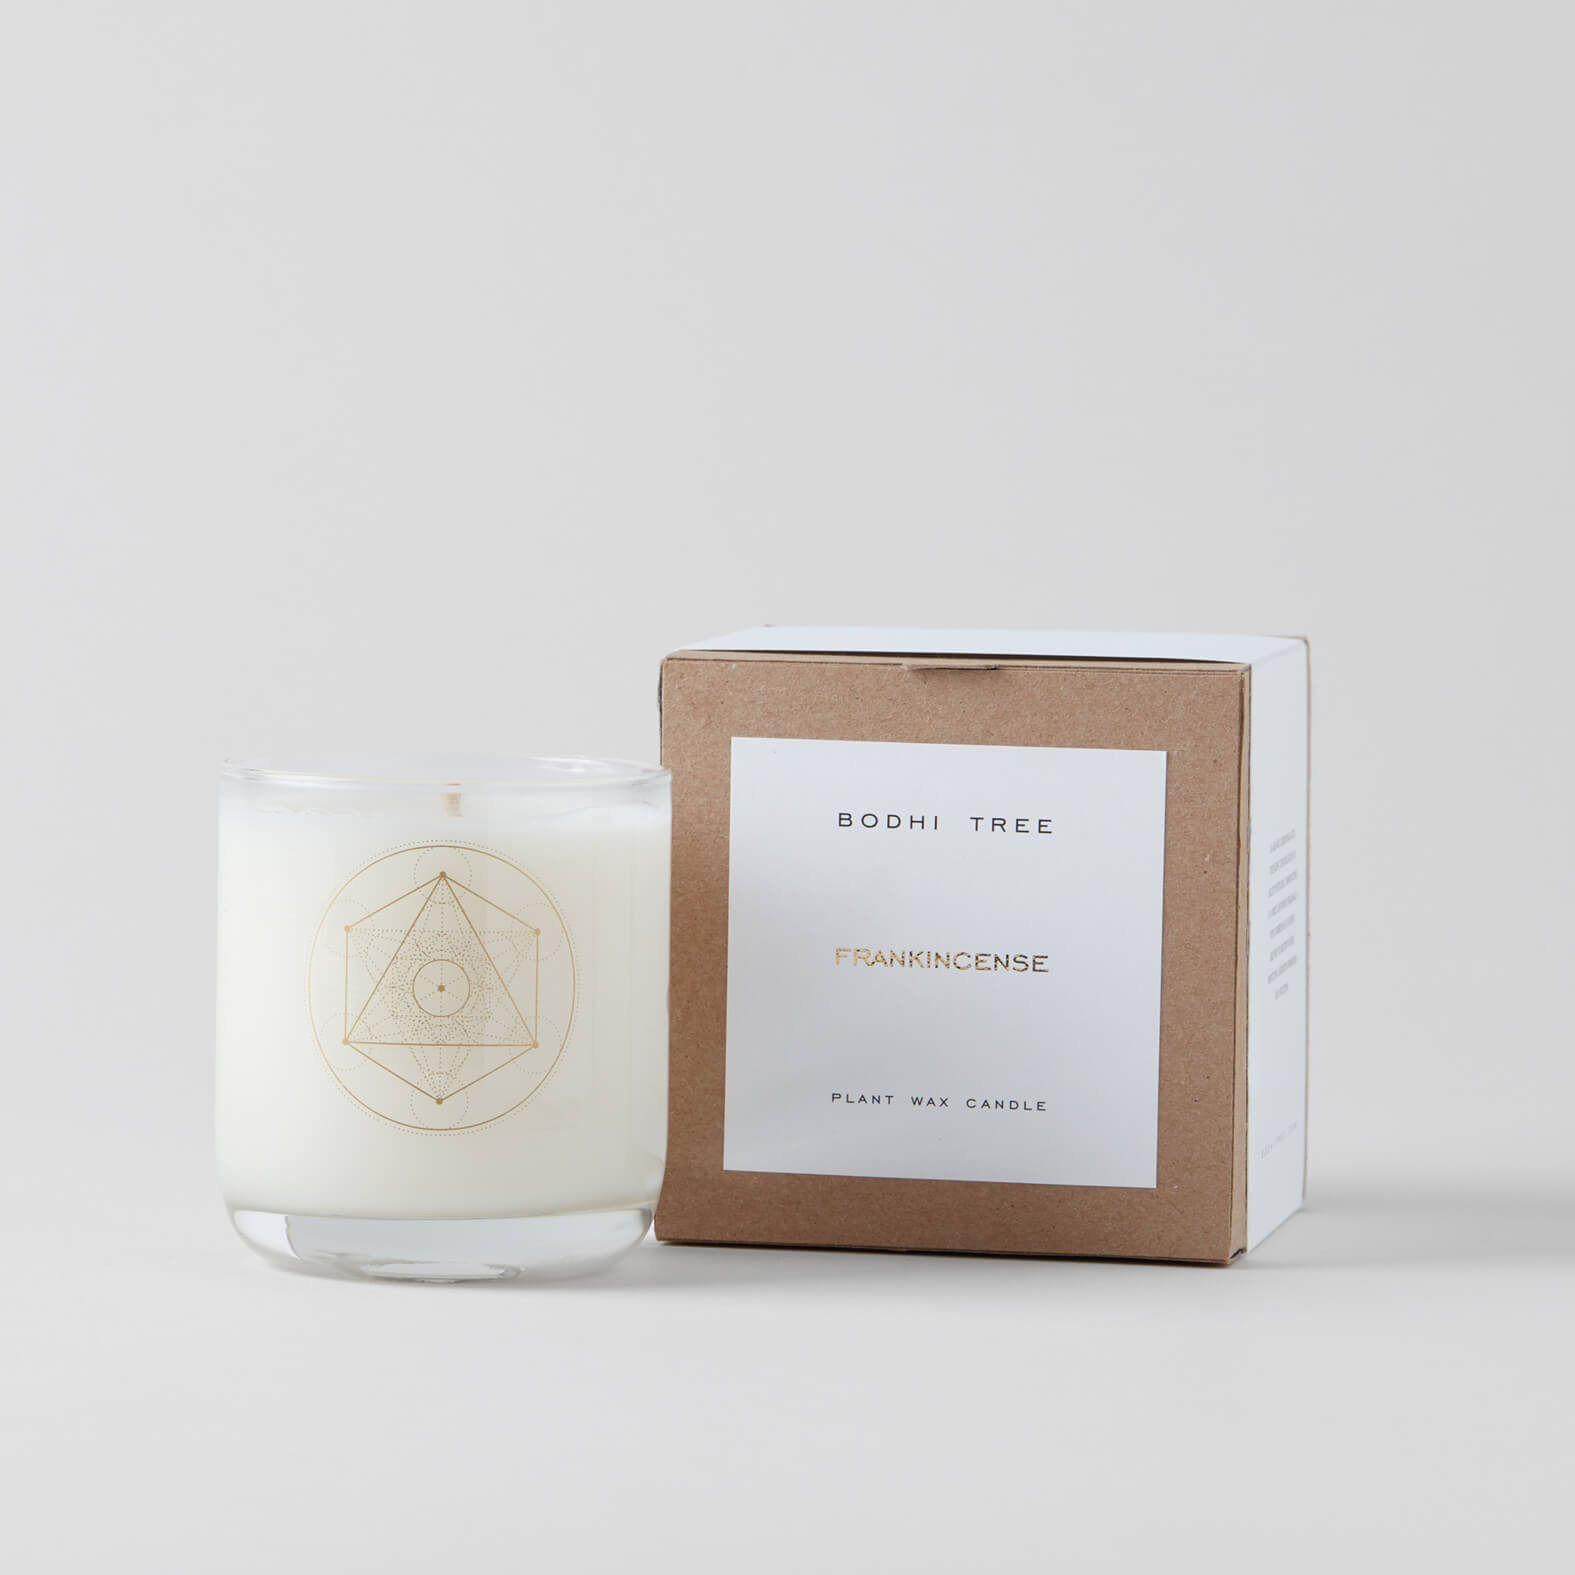 bodhi tree frankincense scented candle and box